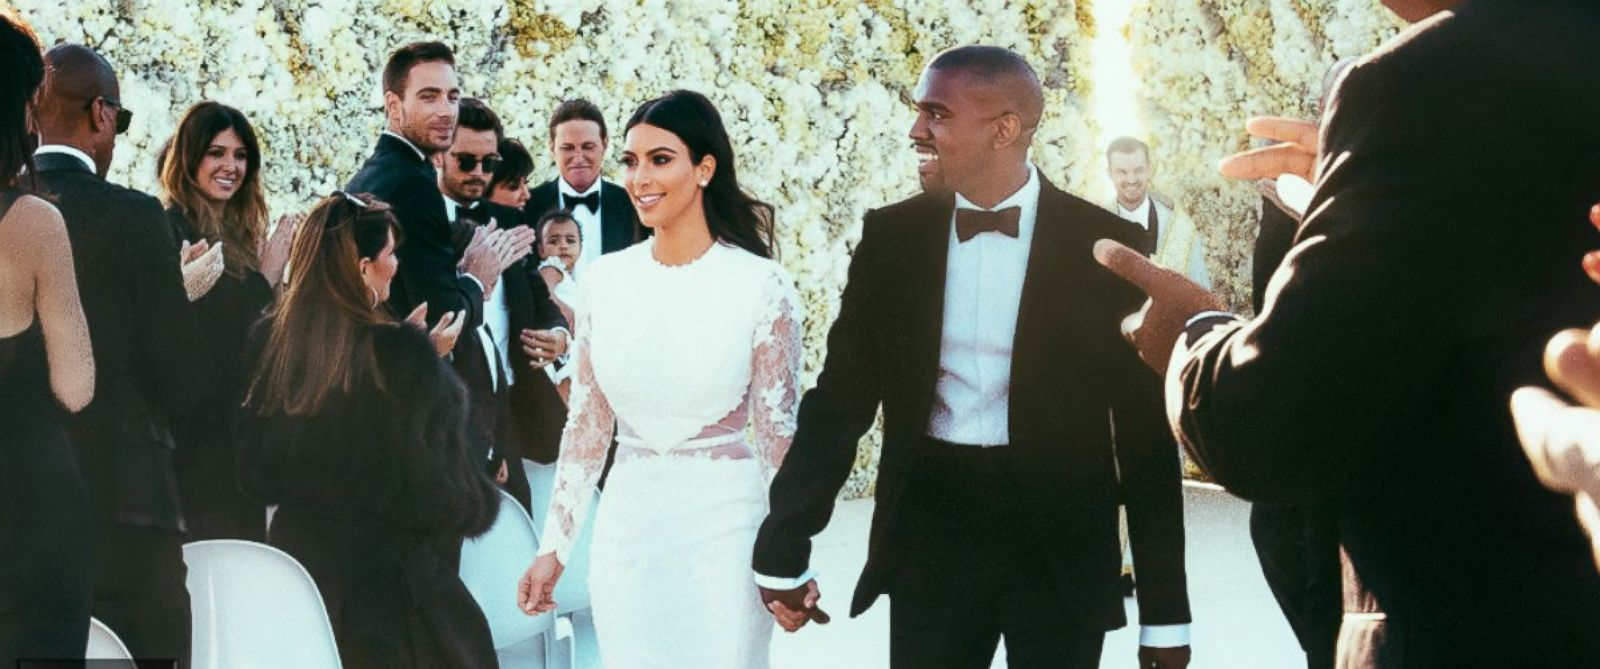 "PHOTO: Newlyweds Kanye West and Kim Kardashian walk down the aisle as friends and family look on at the Forte di Belvedere in Florence, Italy, May 24, 2014. <a href=""http://www.eonline.com/news/545405/kim-kardashian-and-kanye-west-s-first-photos-as-a-marr"